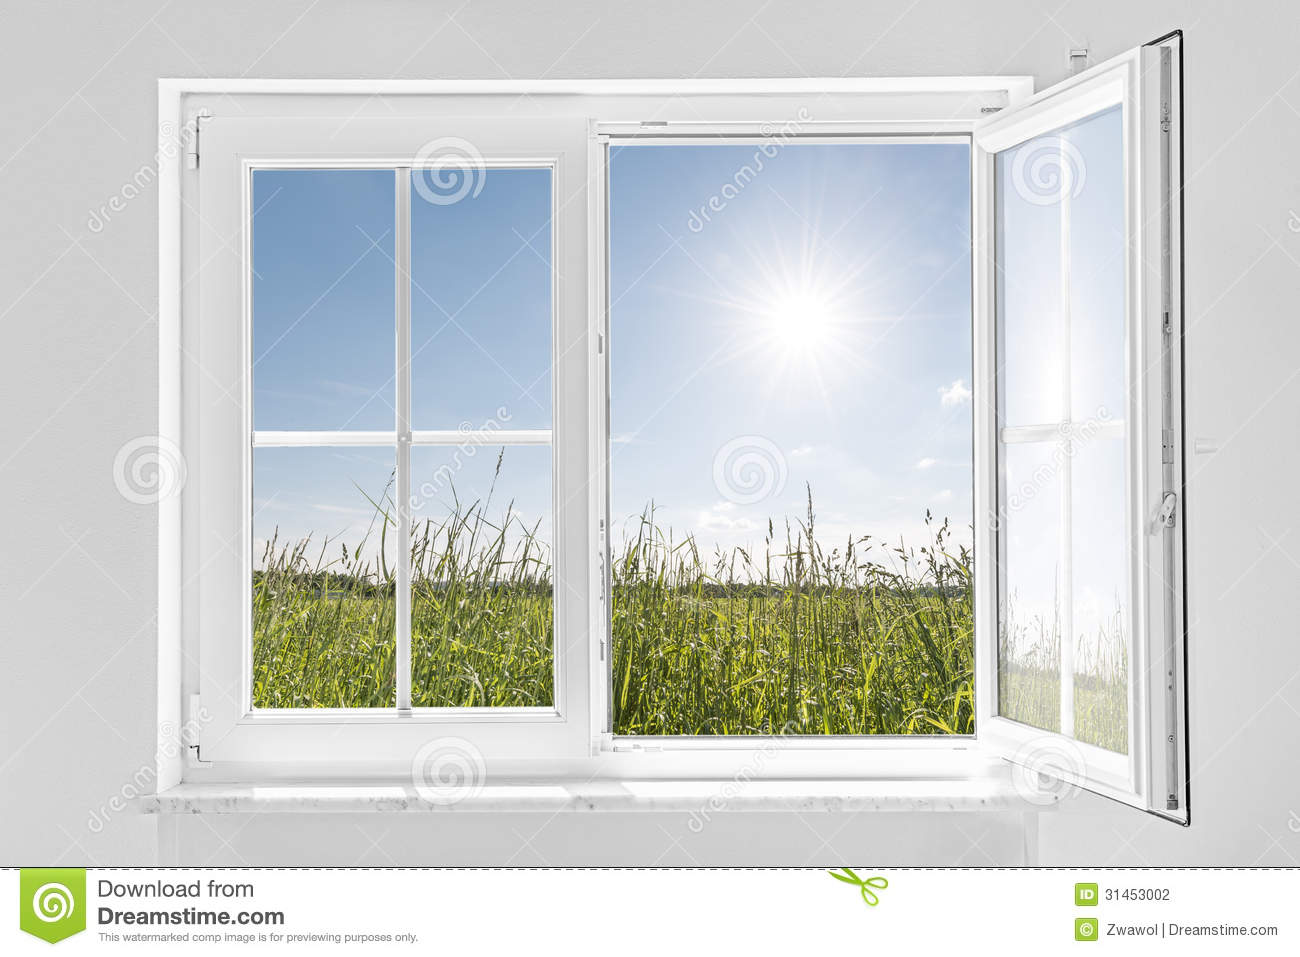 wei es halbes offenes fenster mit sonne stockfotografie bild 31453002. Black Bedroom Furniture Sets. Home Design Ideas